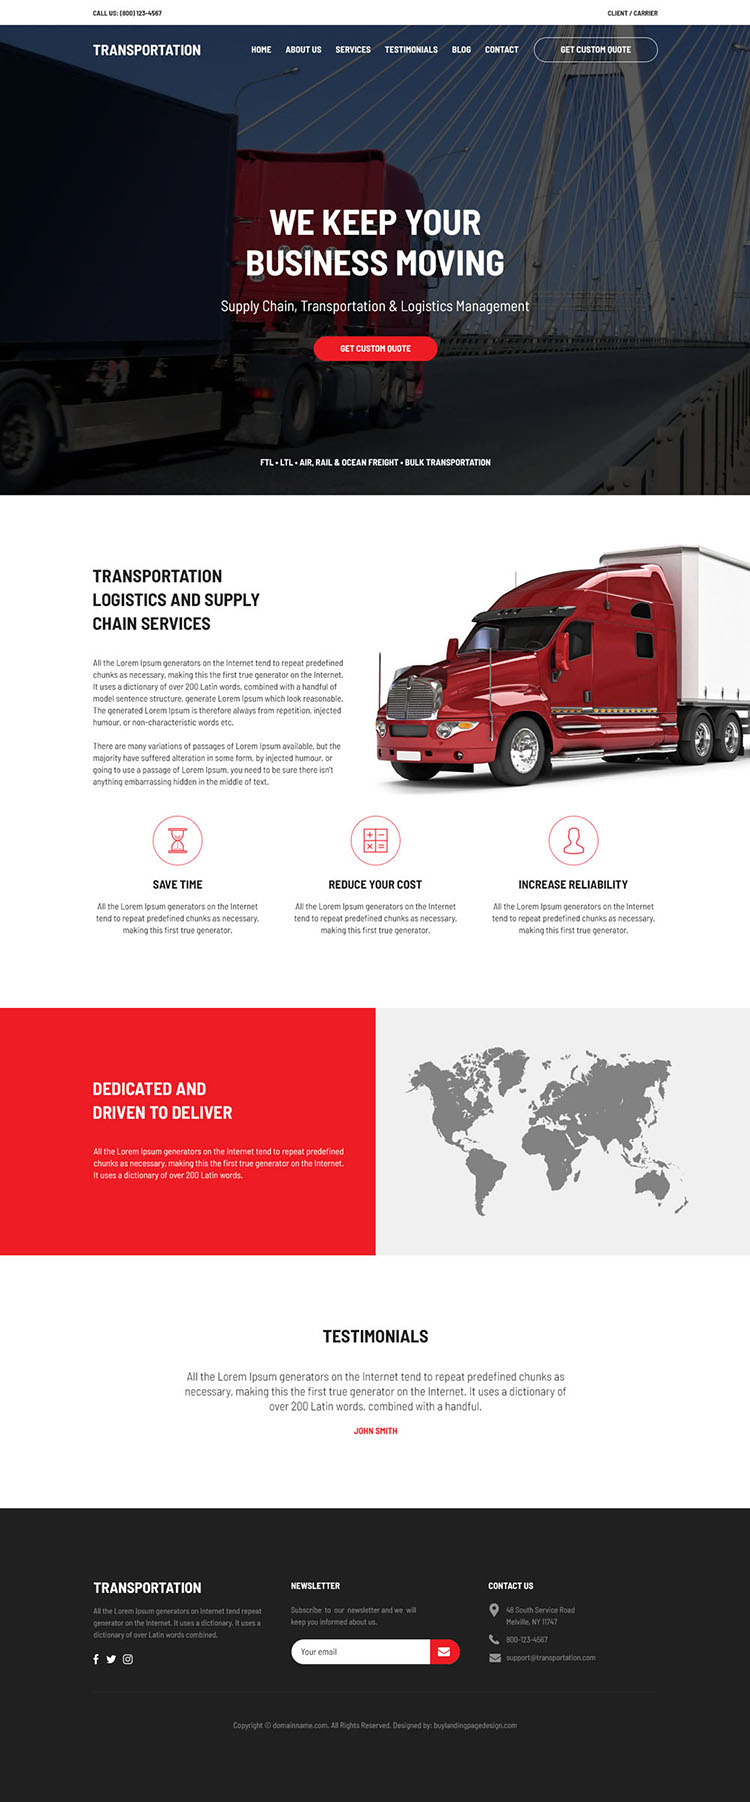 transportation and logistics management service website design